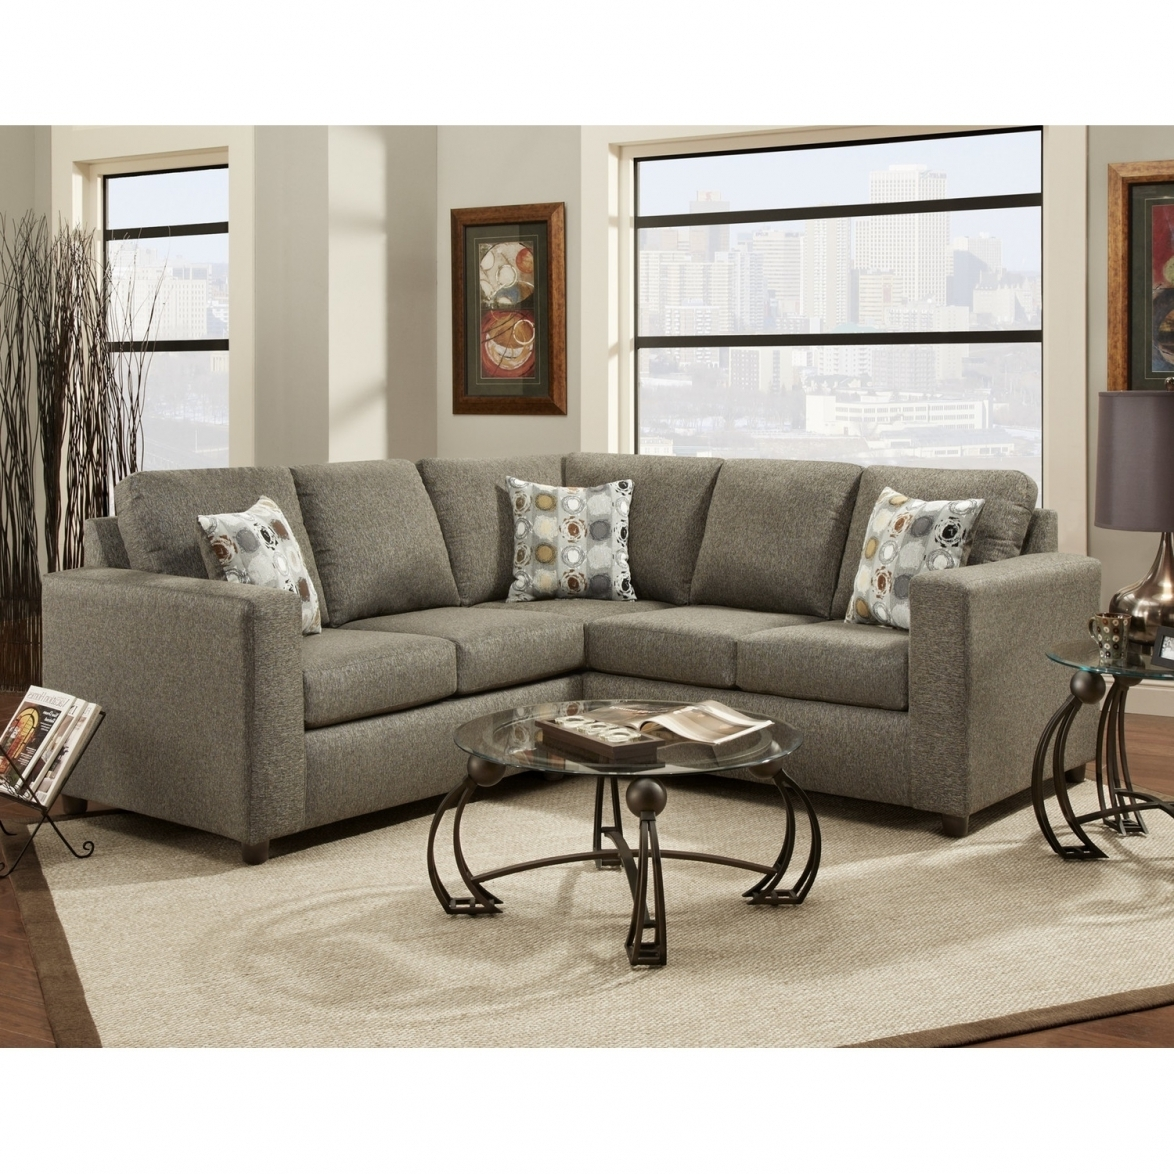 10 best collection of jacksonville fl sectional sofas for Sectional sofa jacksonville